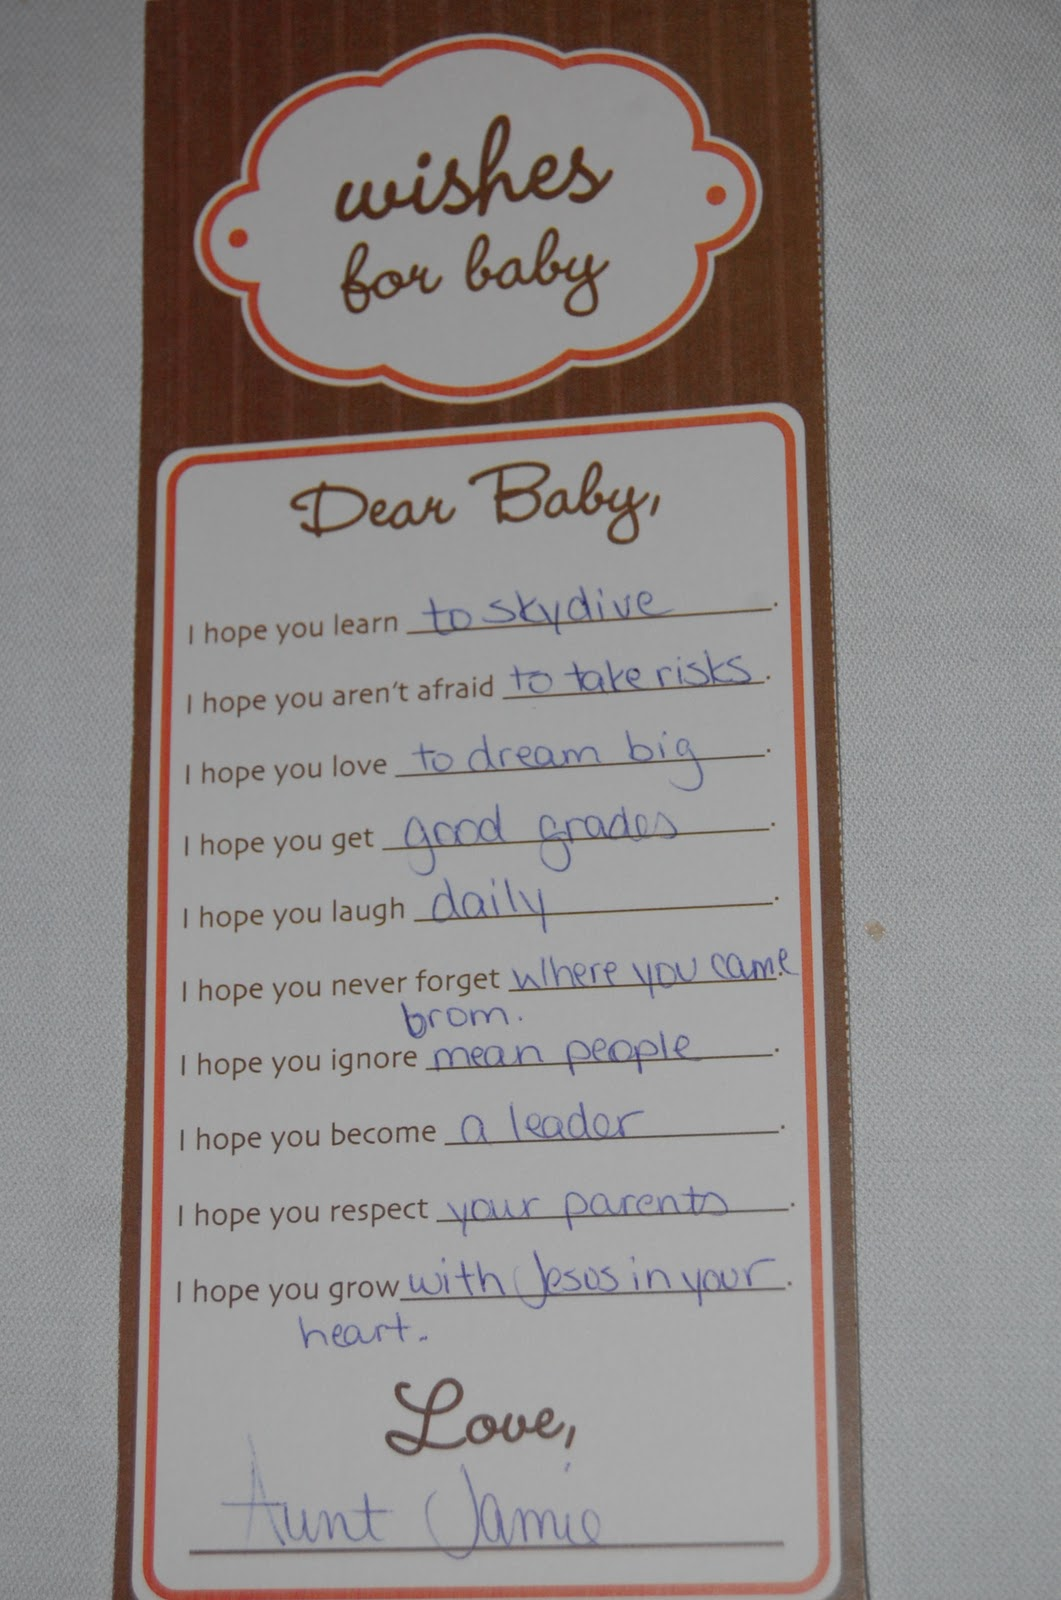 Wishes for baby - - When life as you know it doesn't work ...